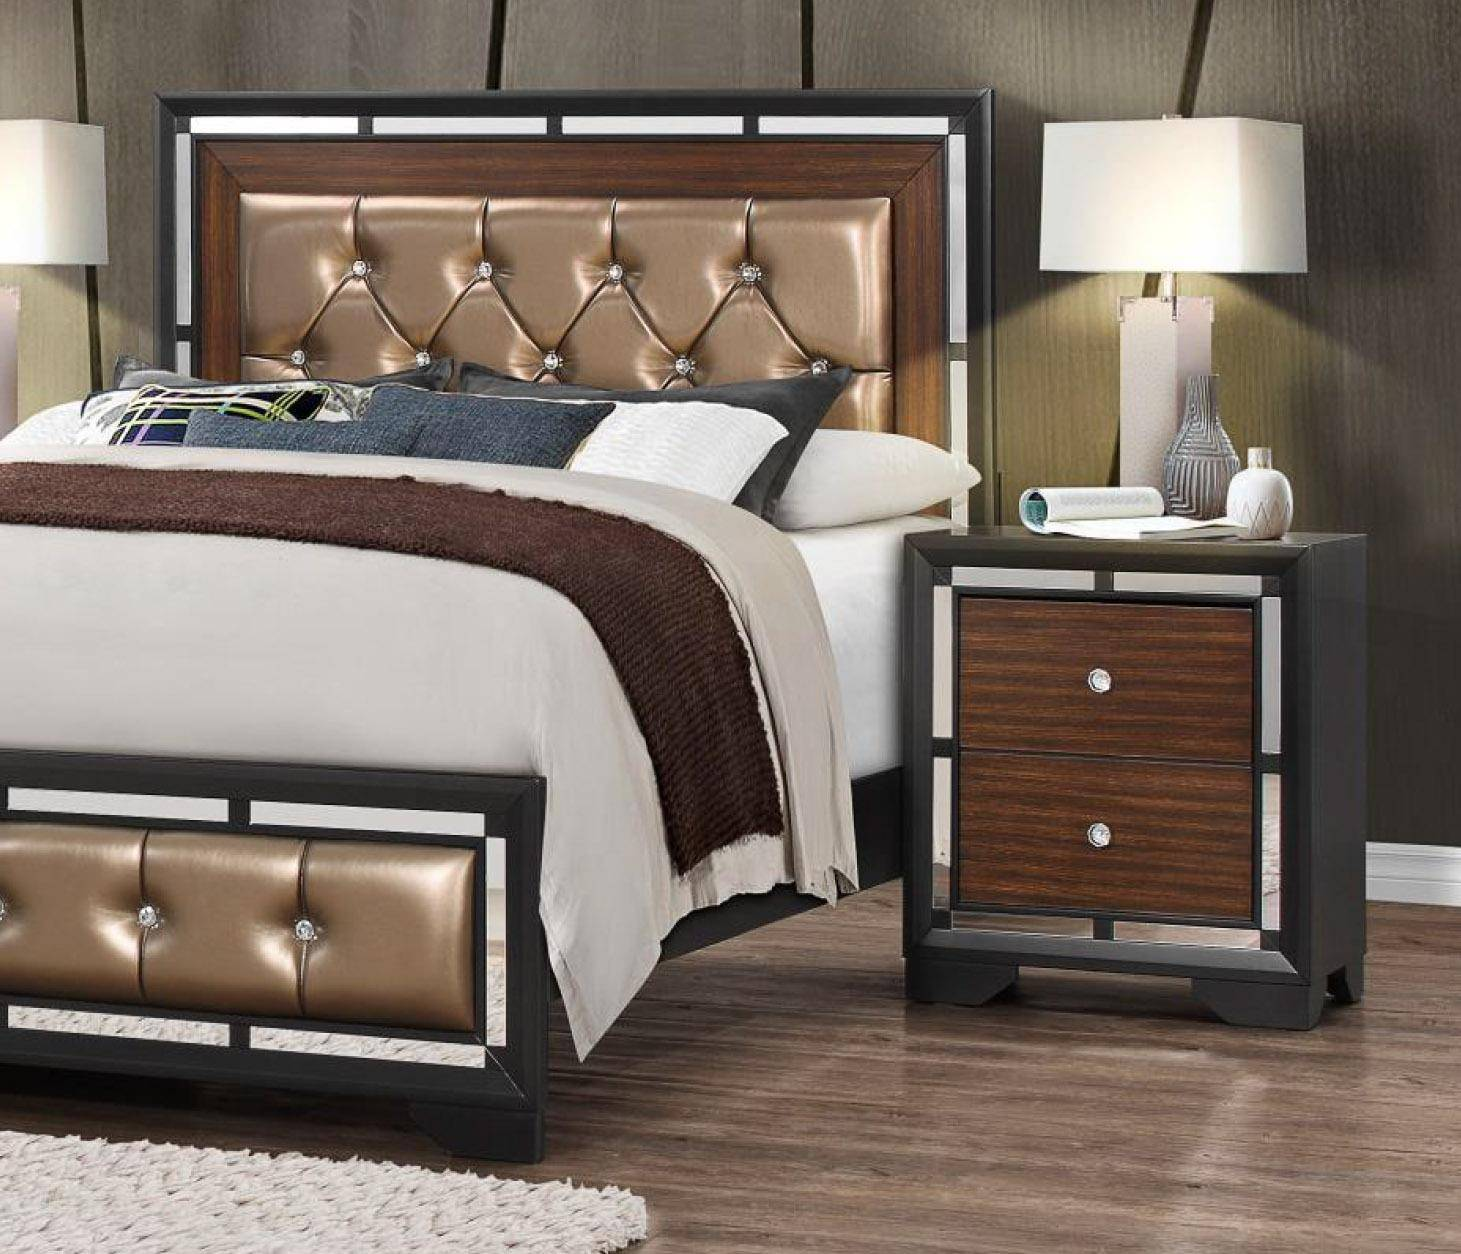 global furniture camila modern dark grey finish wood accents queen rh nyfurnitureoutlets com